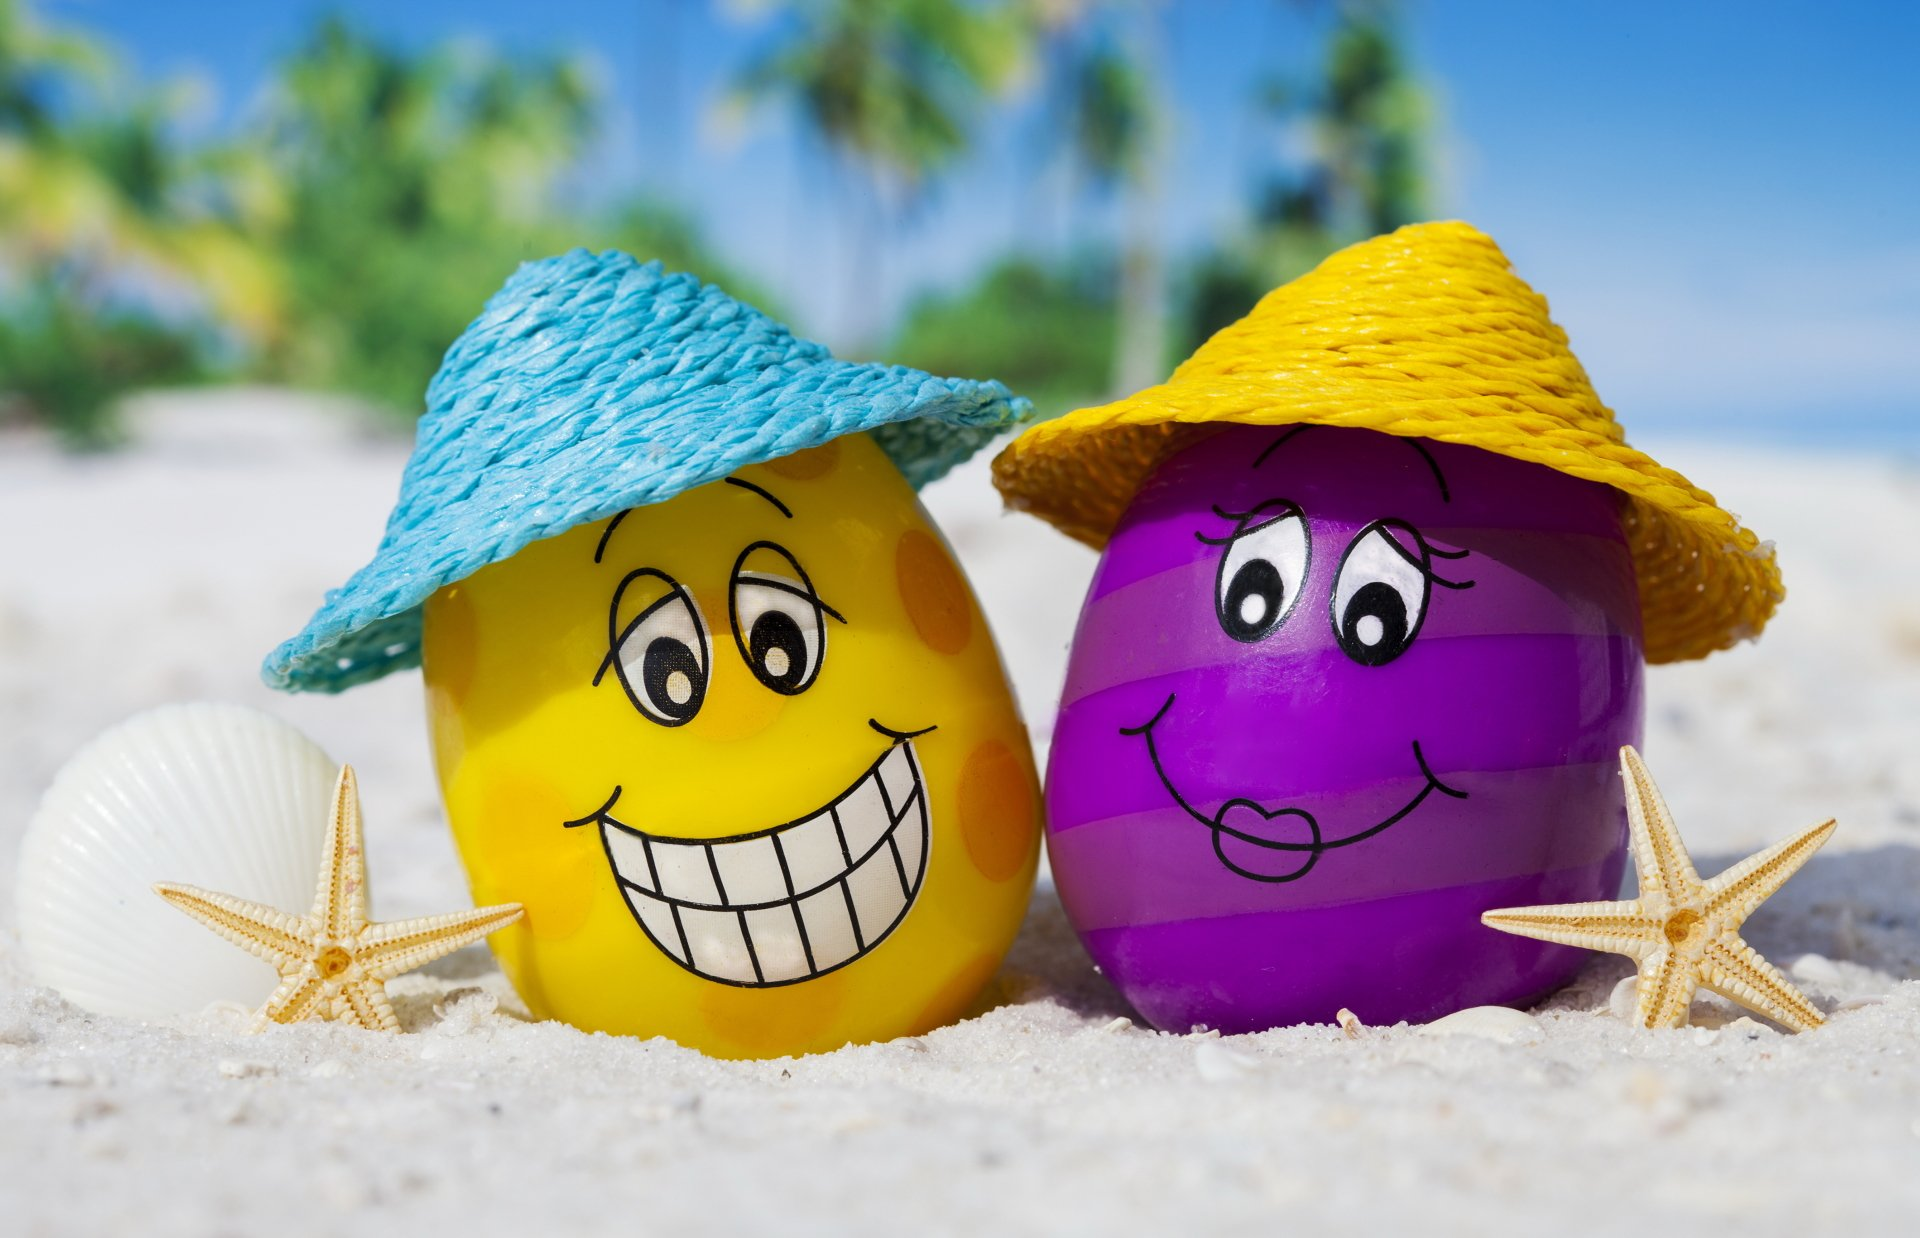 Artistic - Summer  Egg Beach Wallpaper